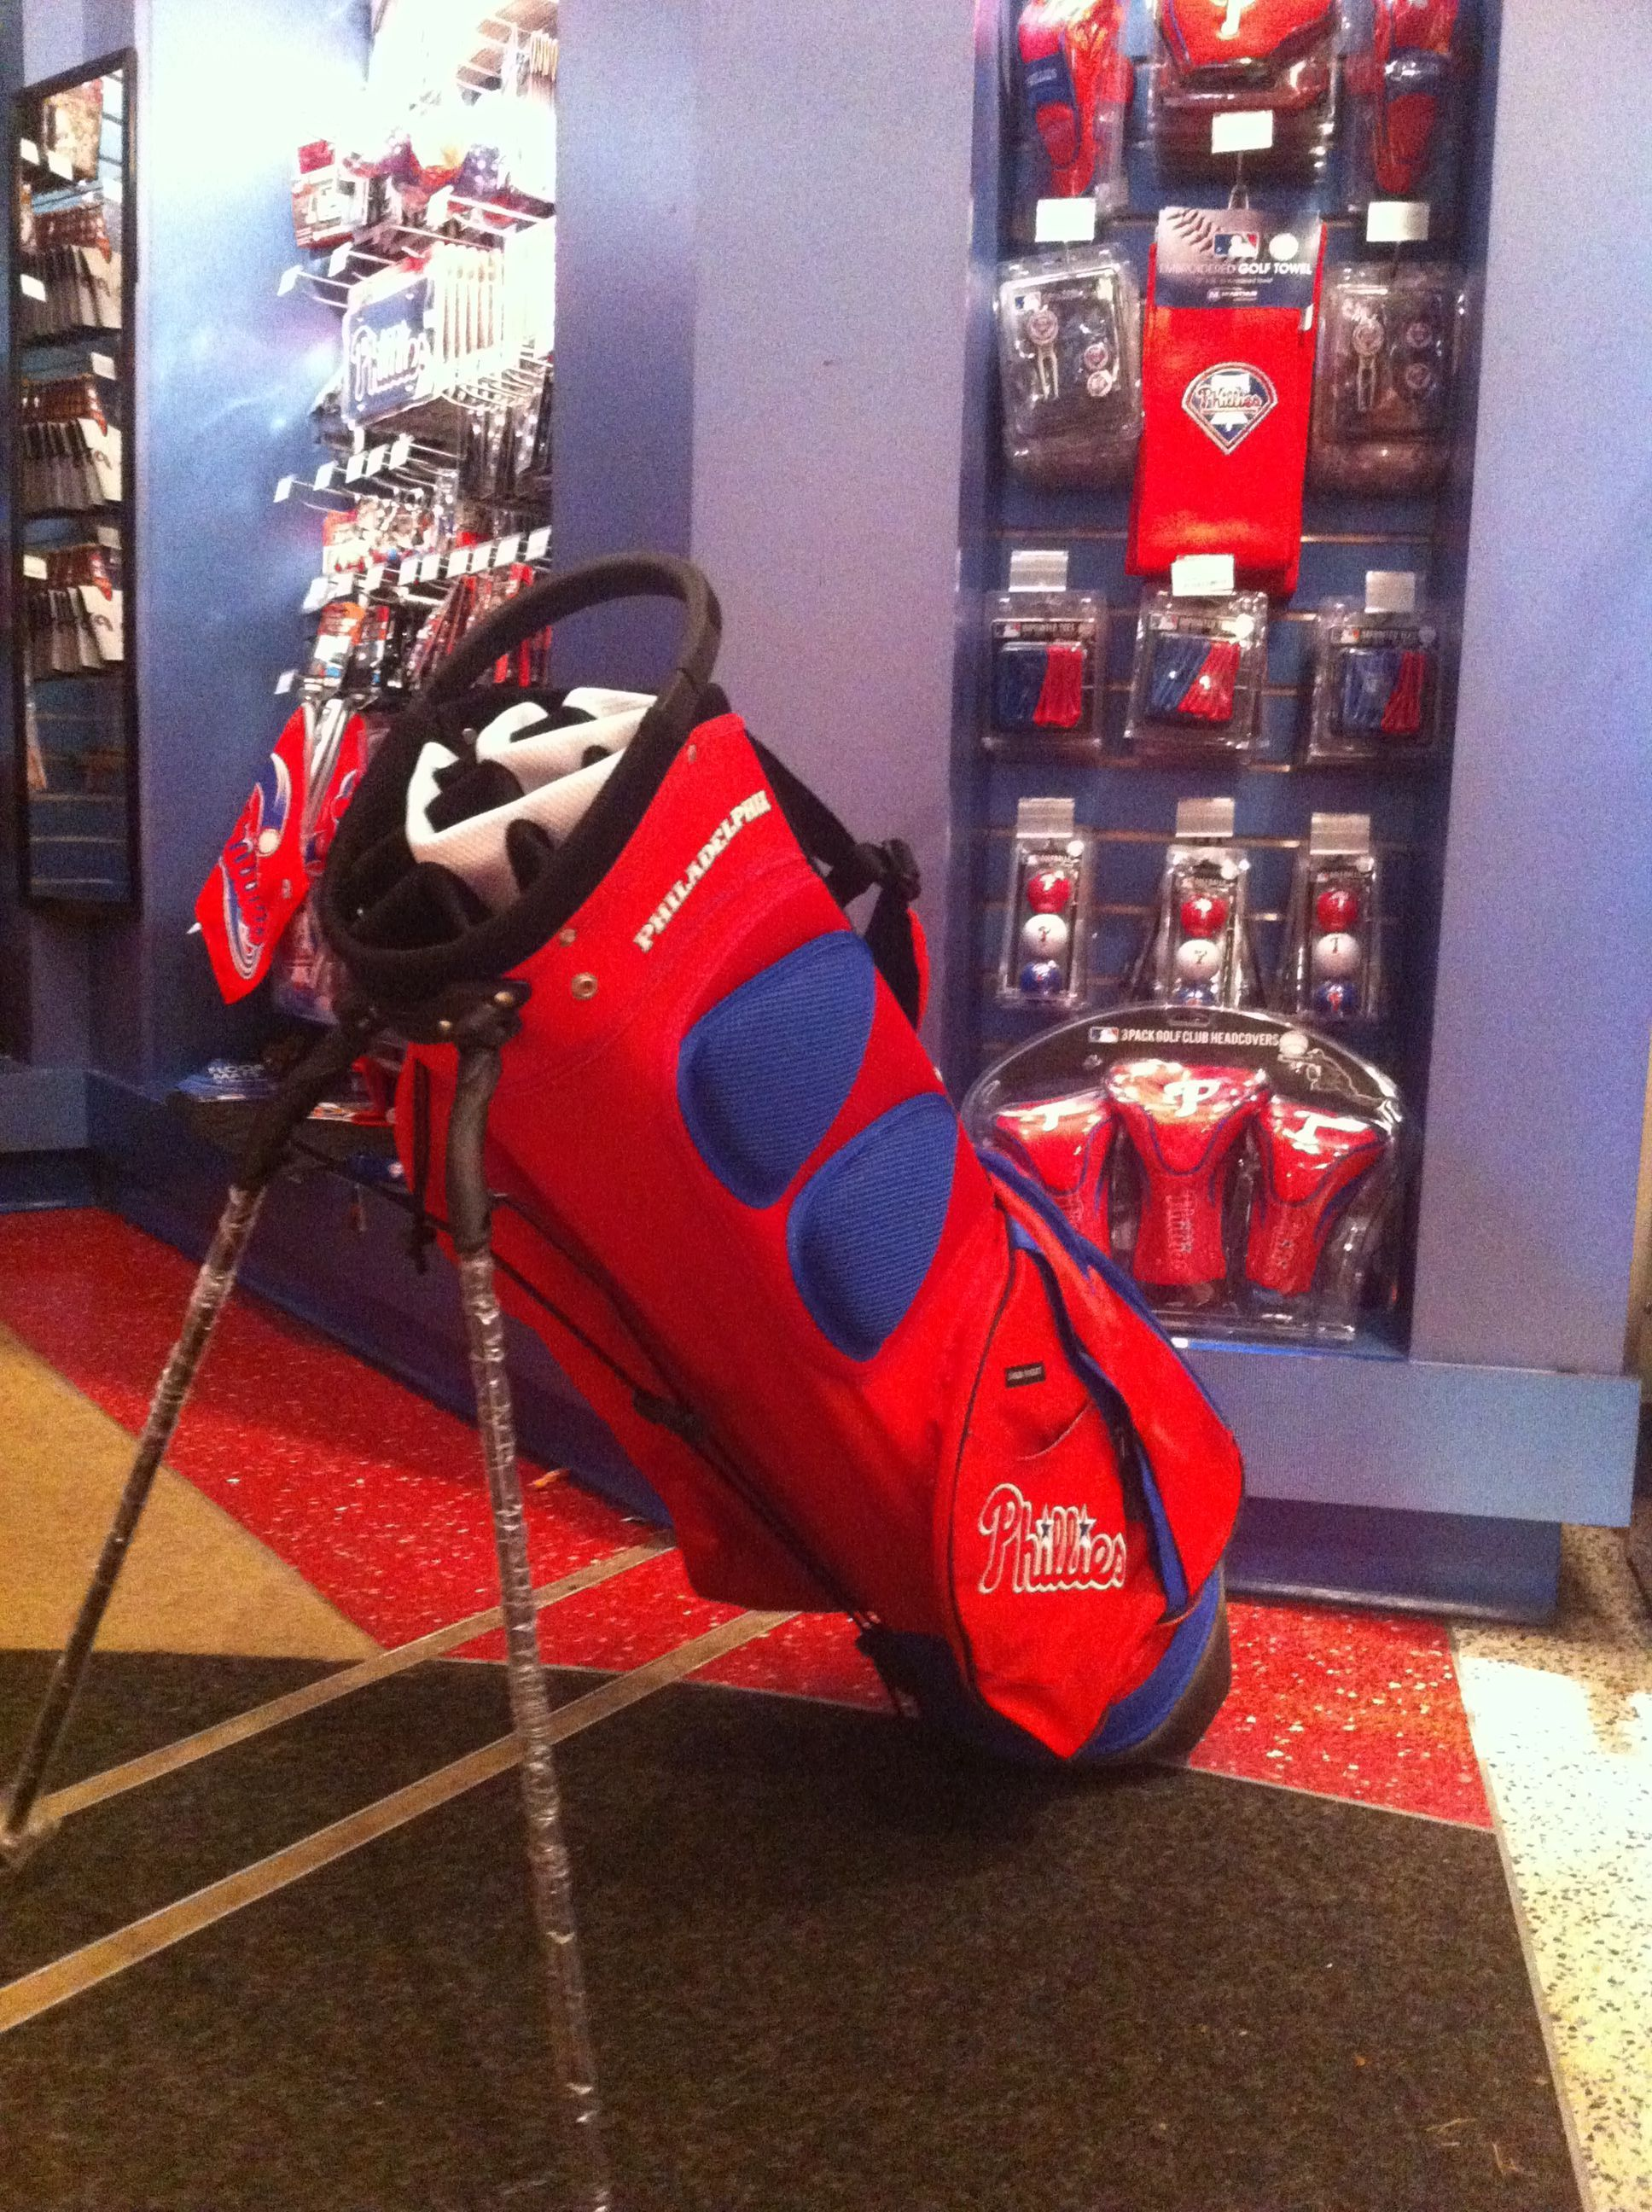 New Golf Gear A Dedicated Section In The Majestic Clubhouse Features Lots Of Phillies To Get That Swing Going